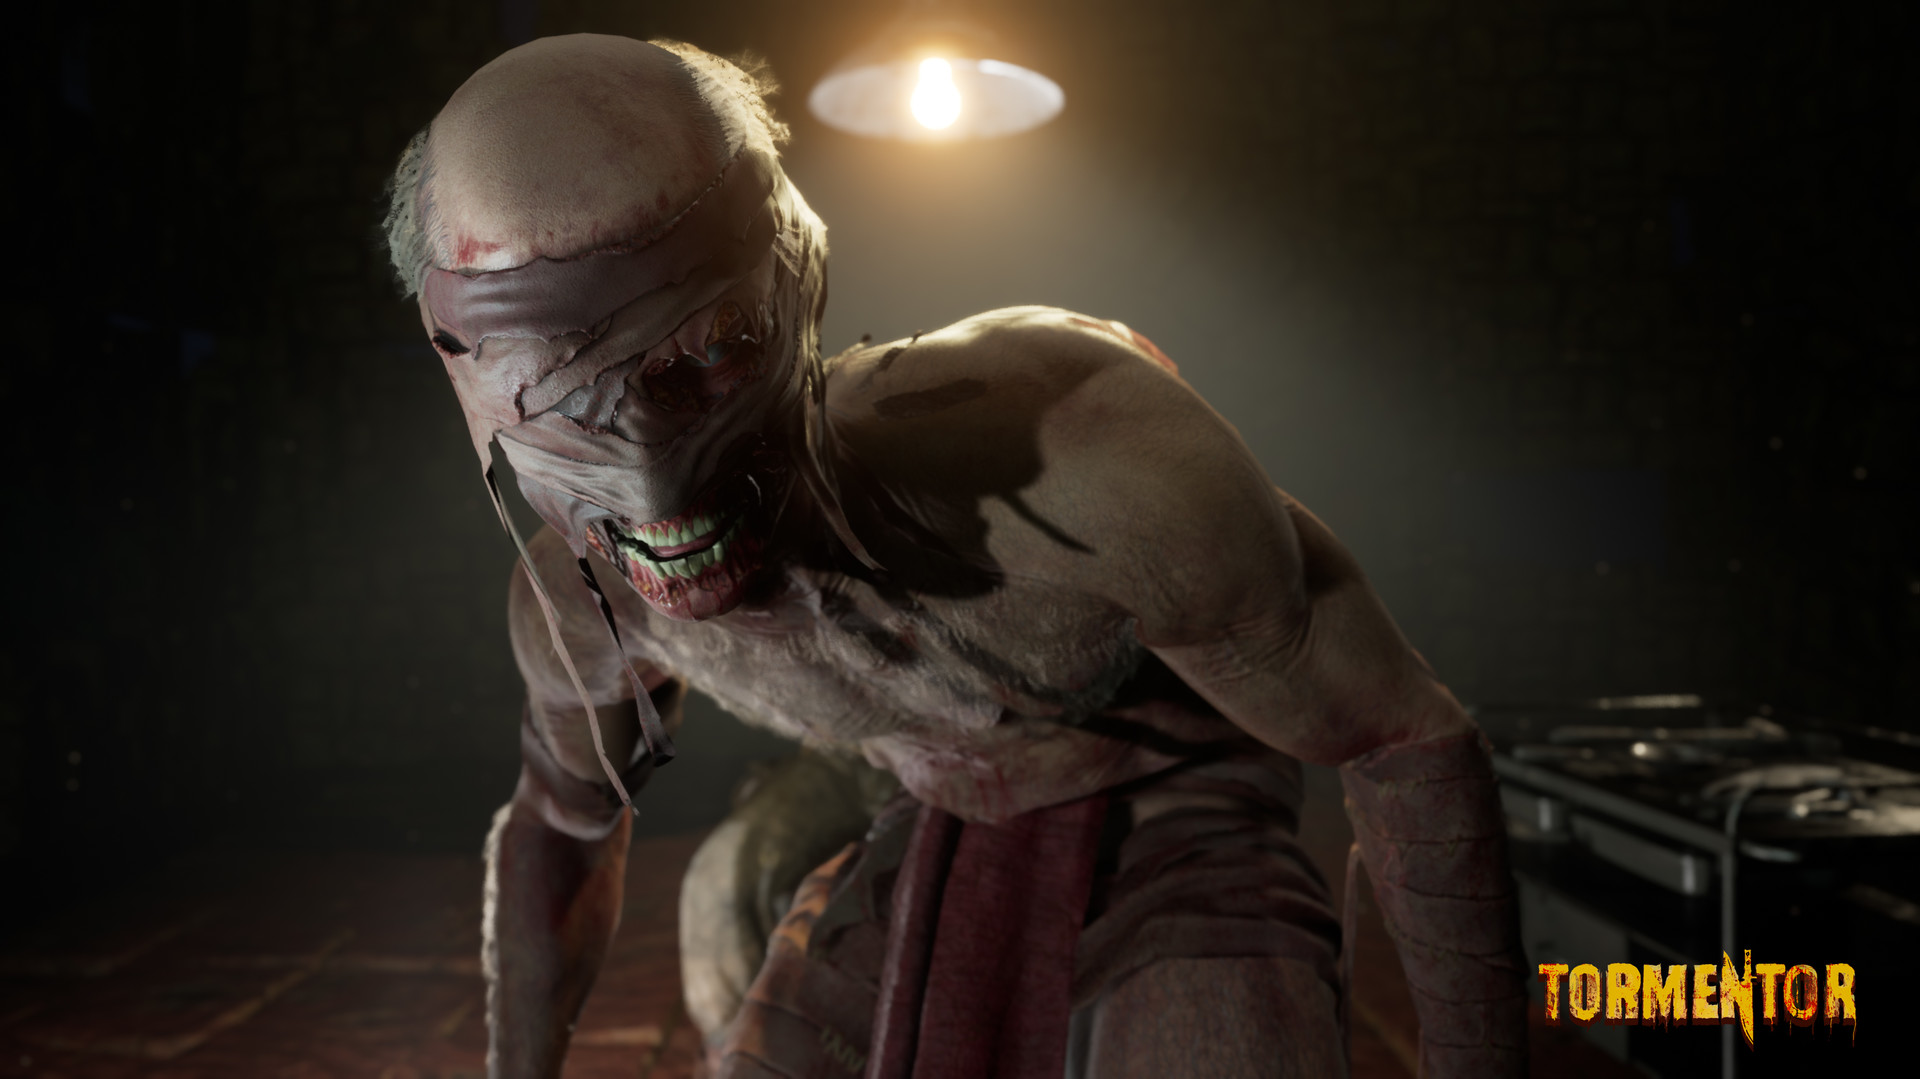 Tormentor Comes From The Developer Madmind Studio For A Brand New Horror Expereince